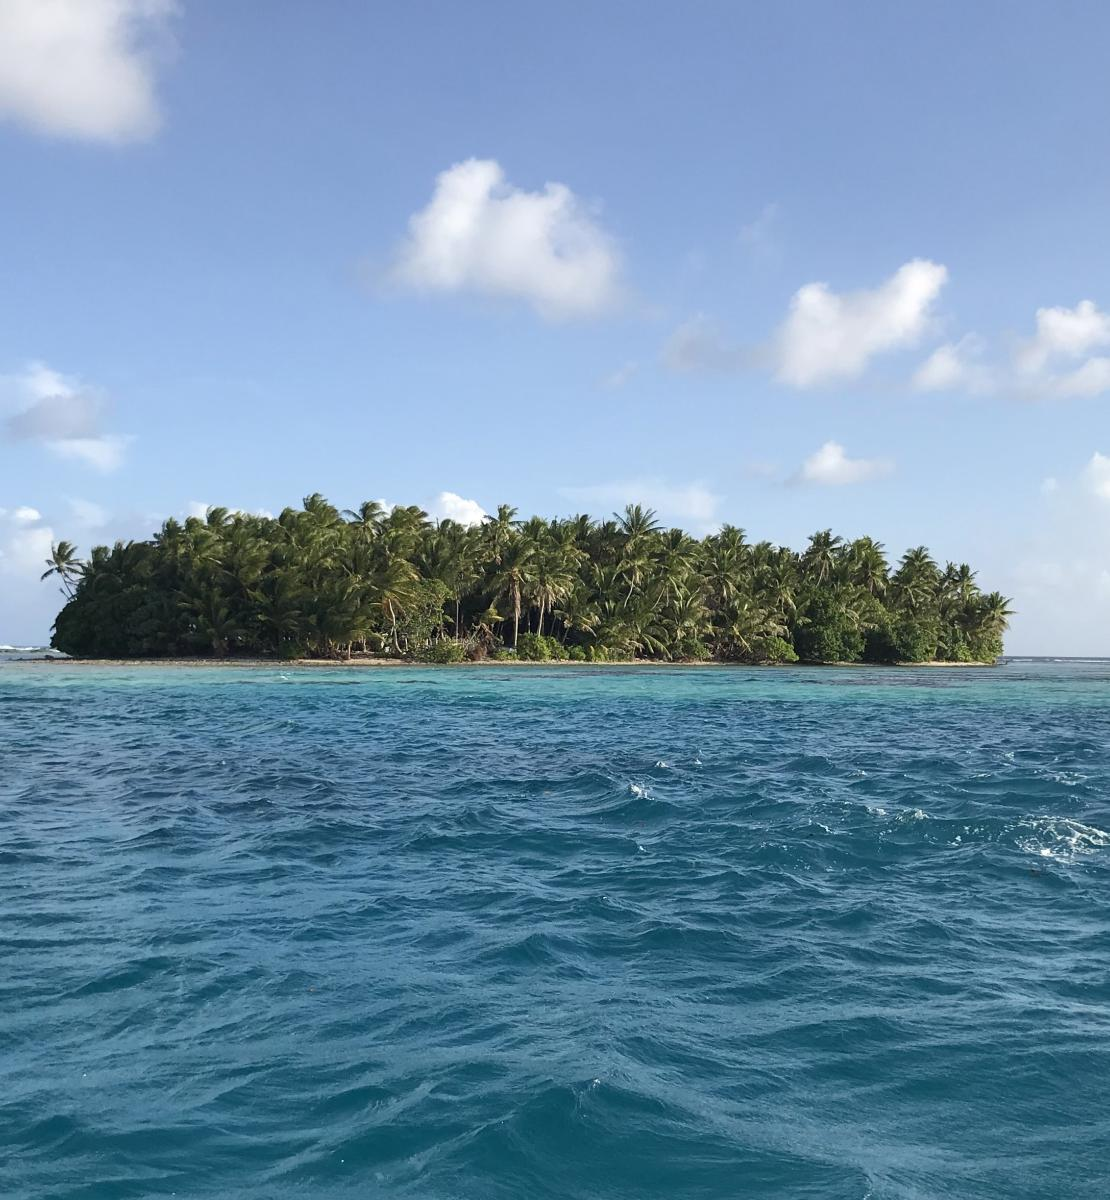 A landscape view of an island full of trees in the ocean on a beautiful day.